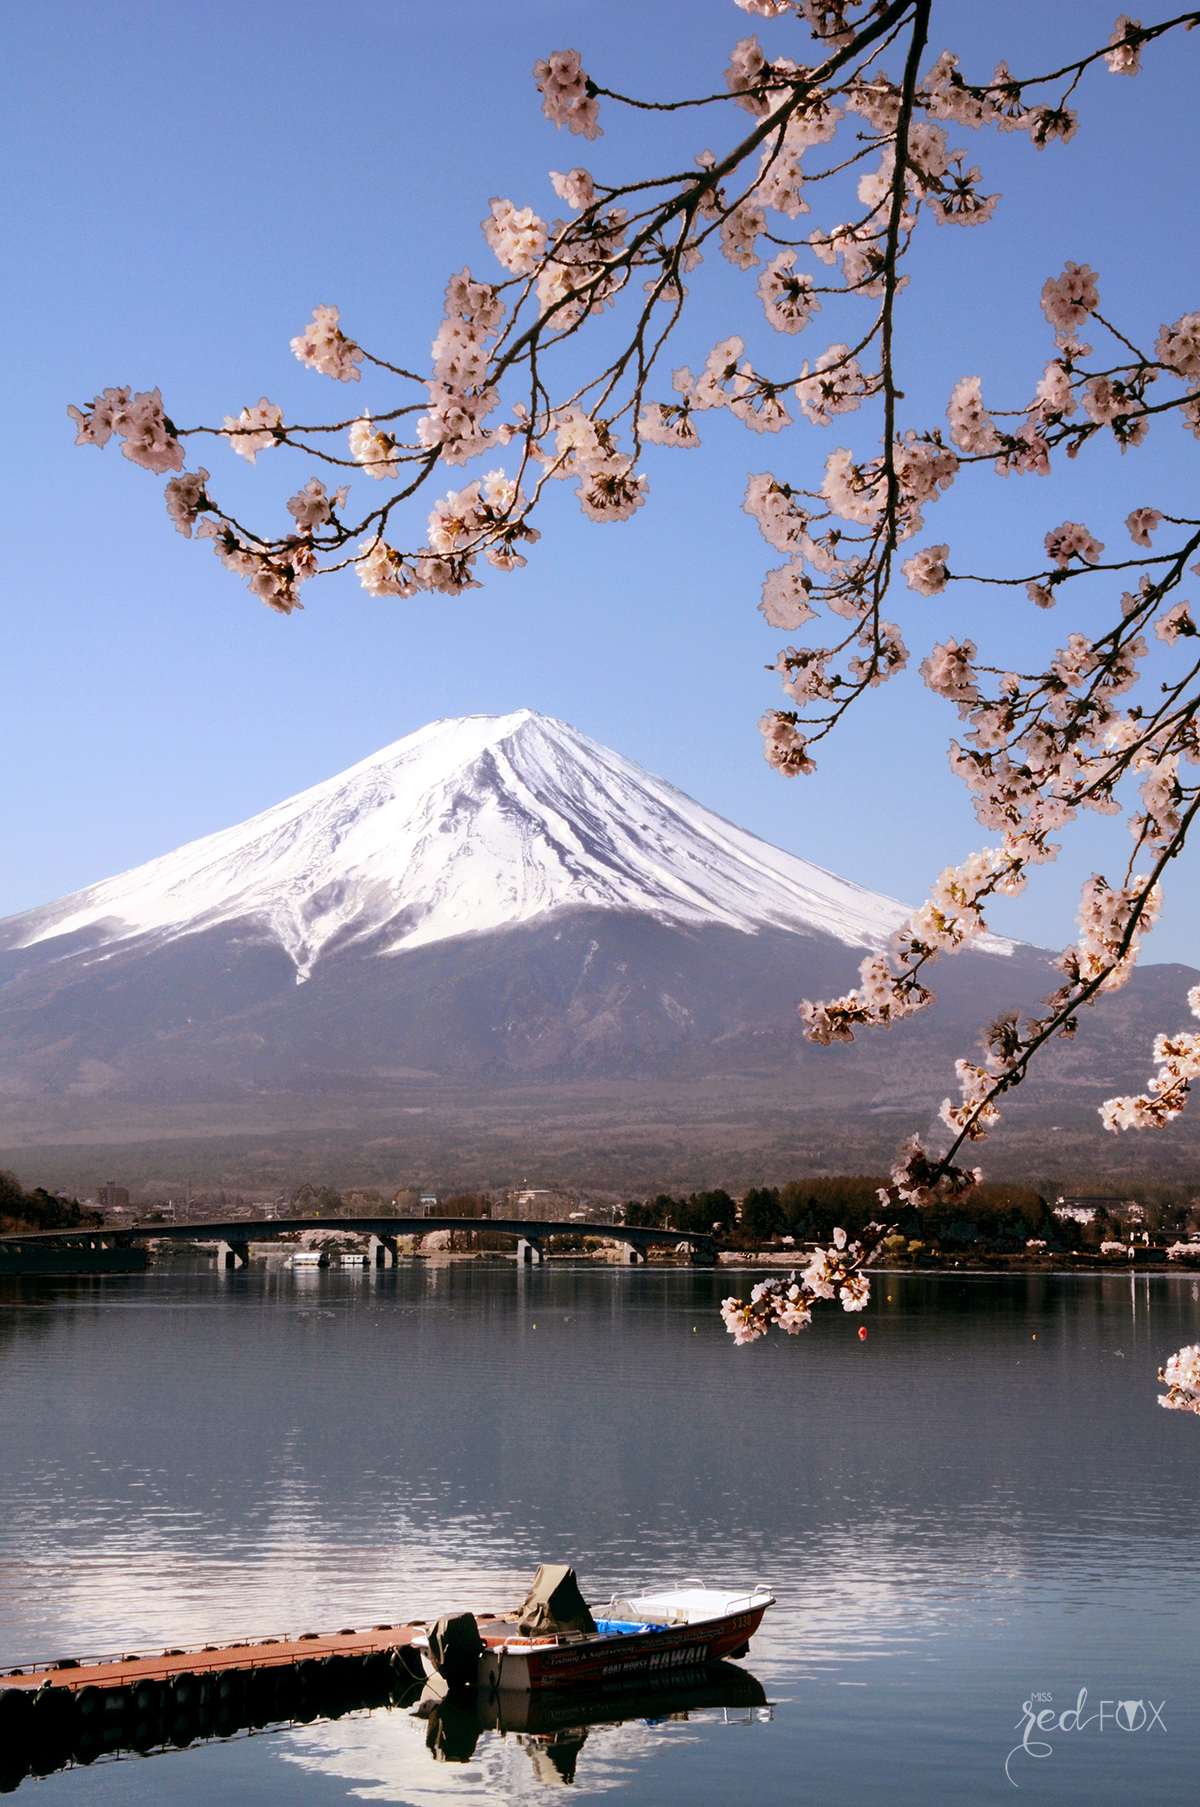 missredfox - Japan - Fuji - 47